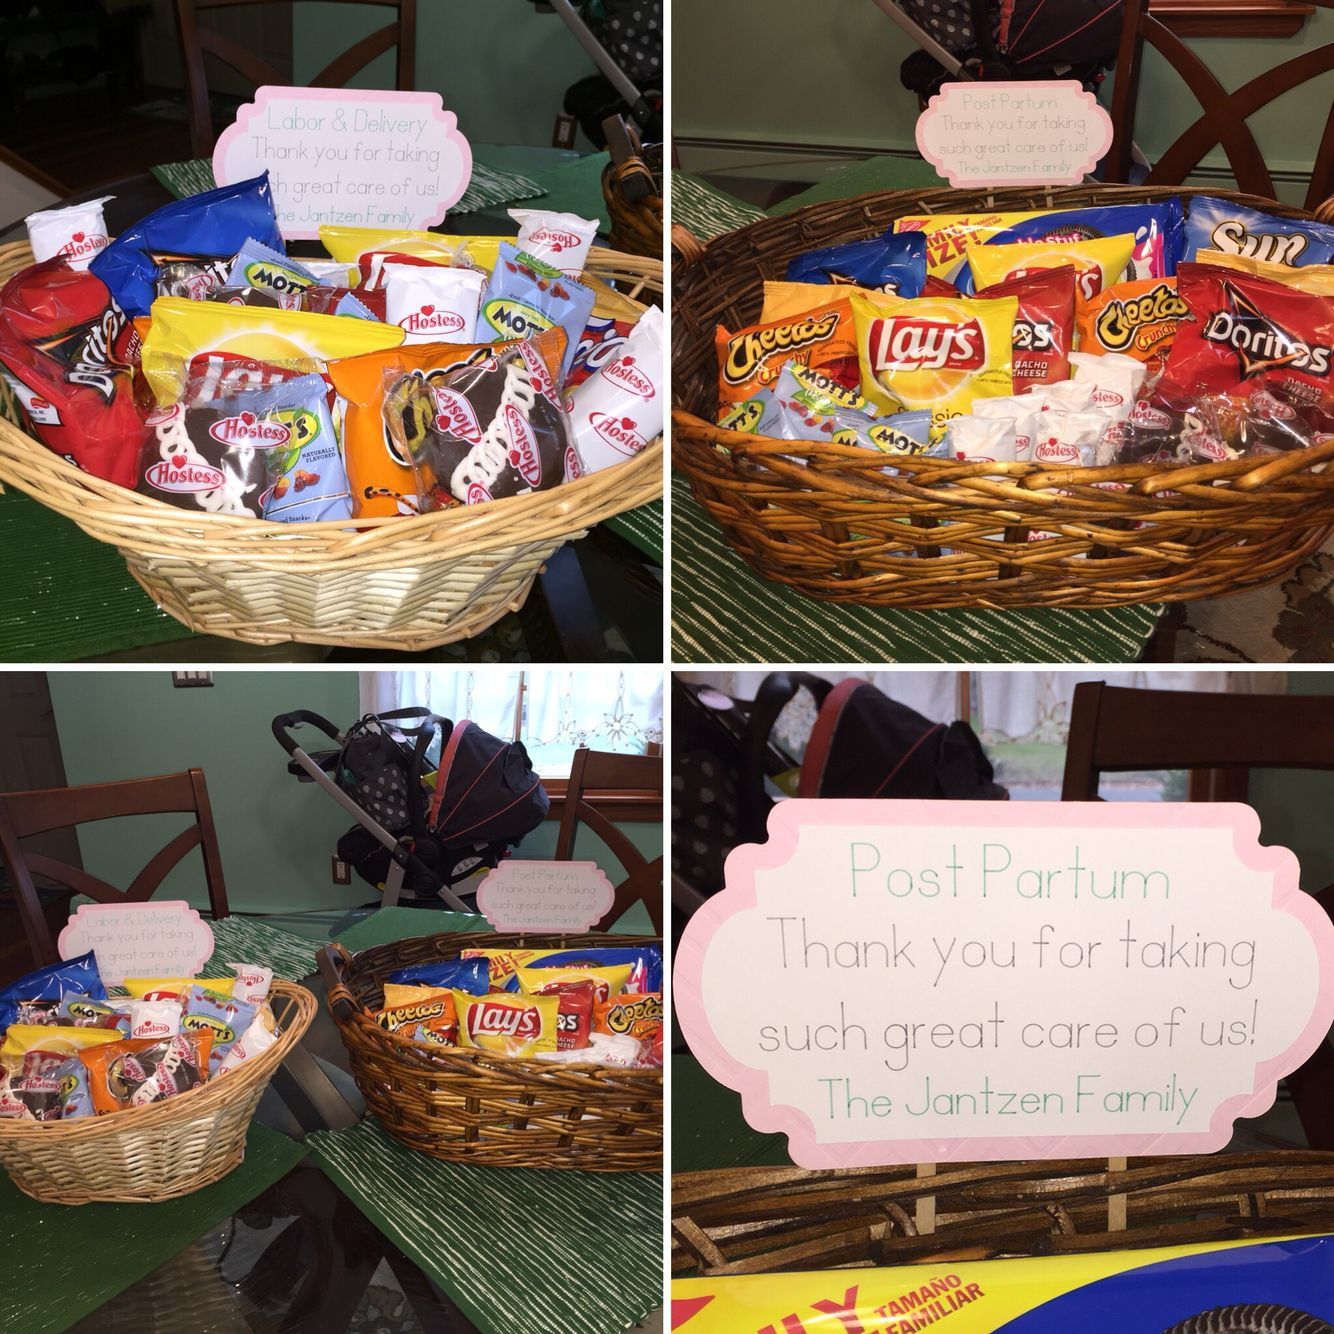 Baby Gift Ideas For Hospital : Thank you basket for nurses and staff labor delivery